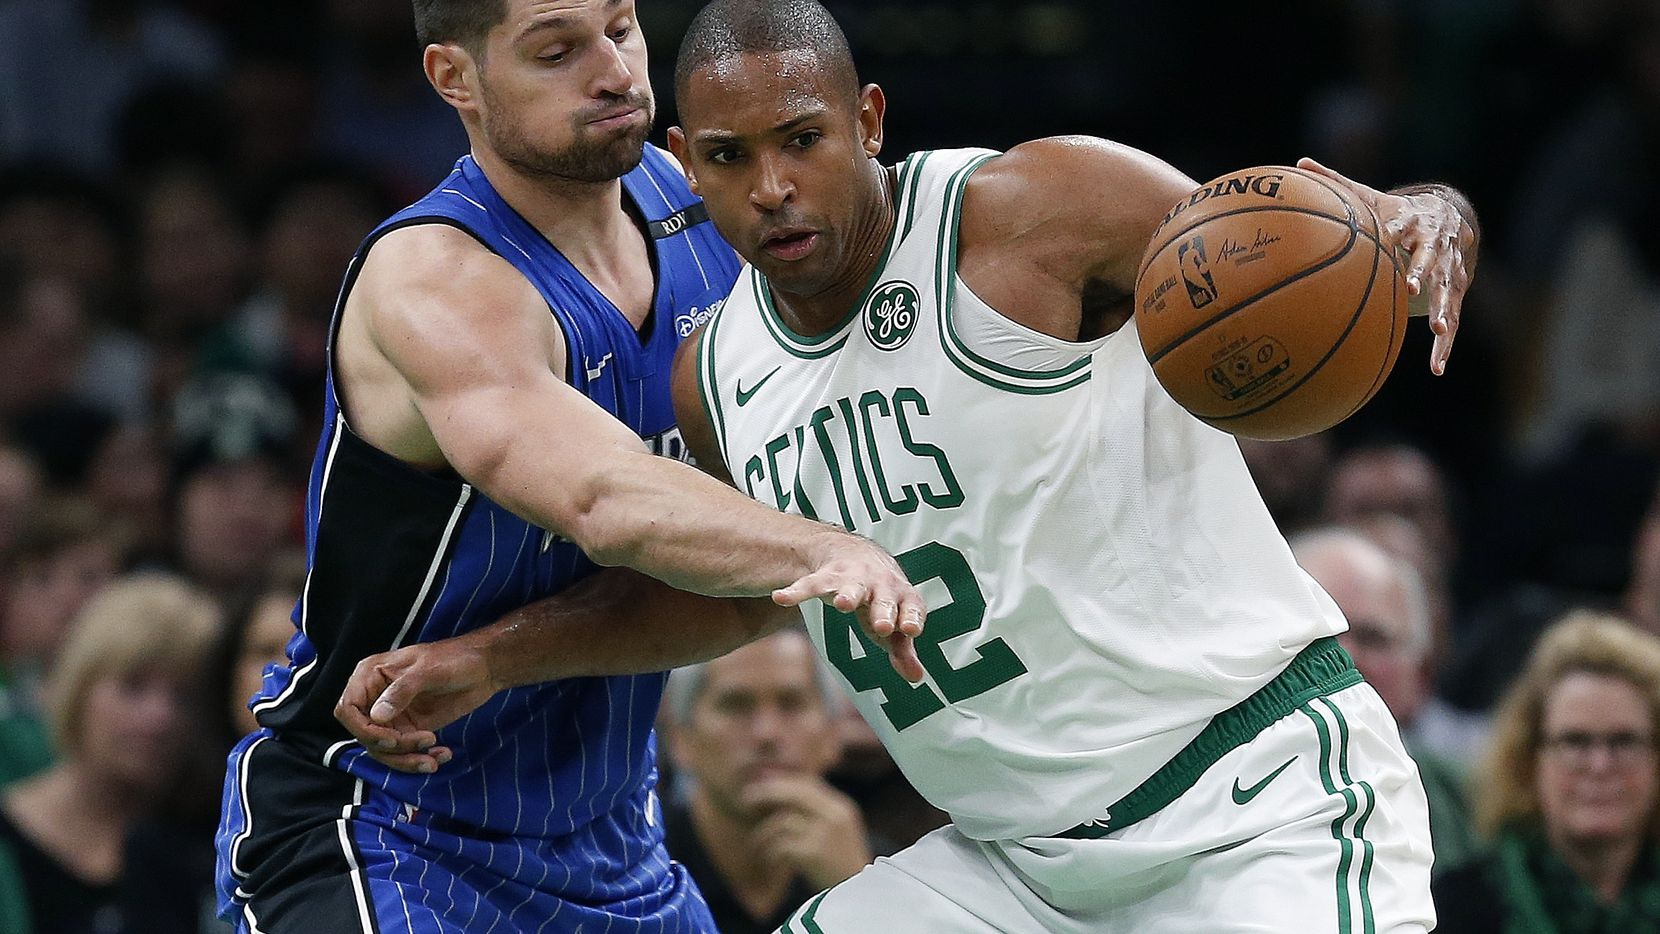 Orlando Magic's Nikola Vucevic, left, defends against Boston Celtics' Al Horford (42) during the second half of an NBA basketball game in Boston, Monday, Oct. 22, 2018. (AP Photo/Michael Dwyer)